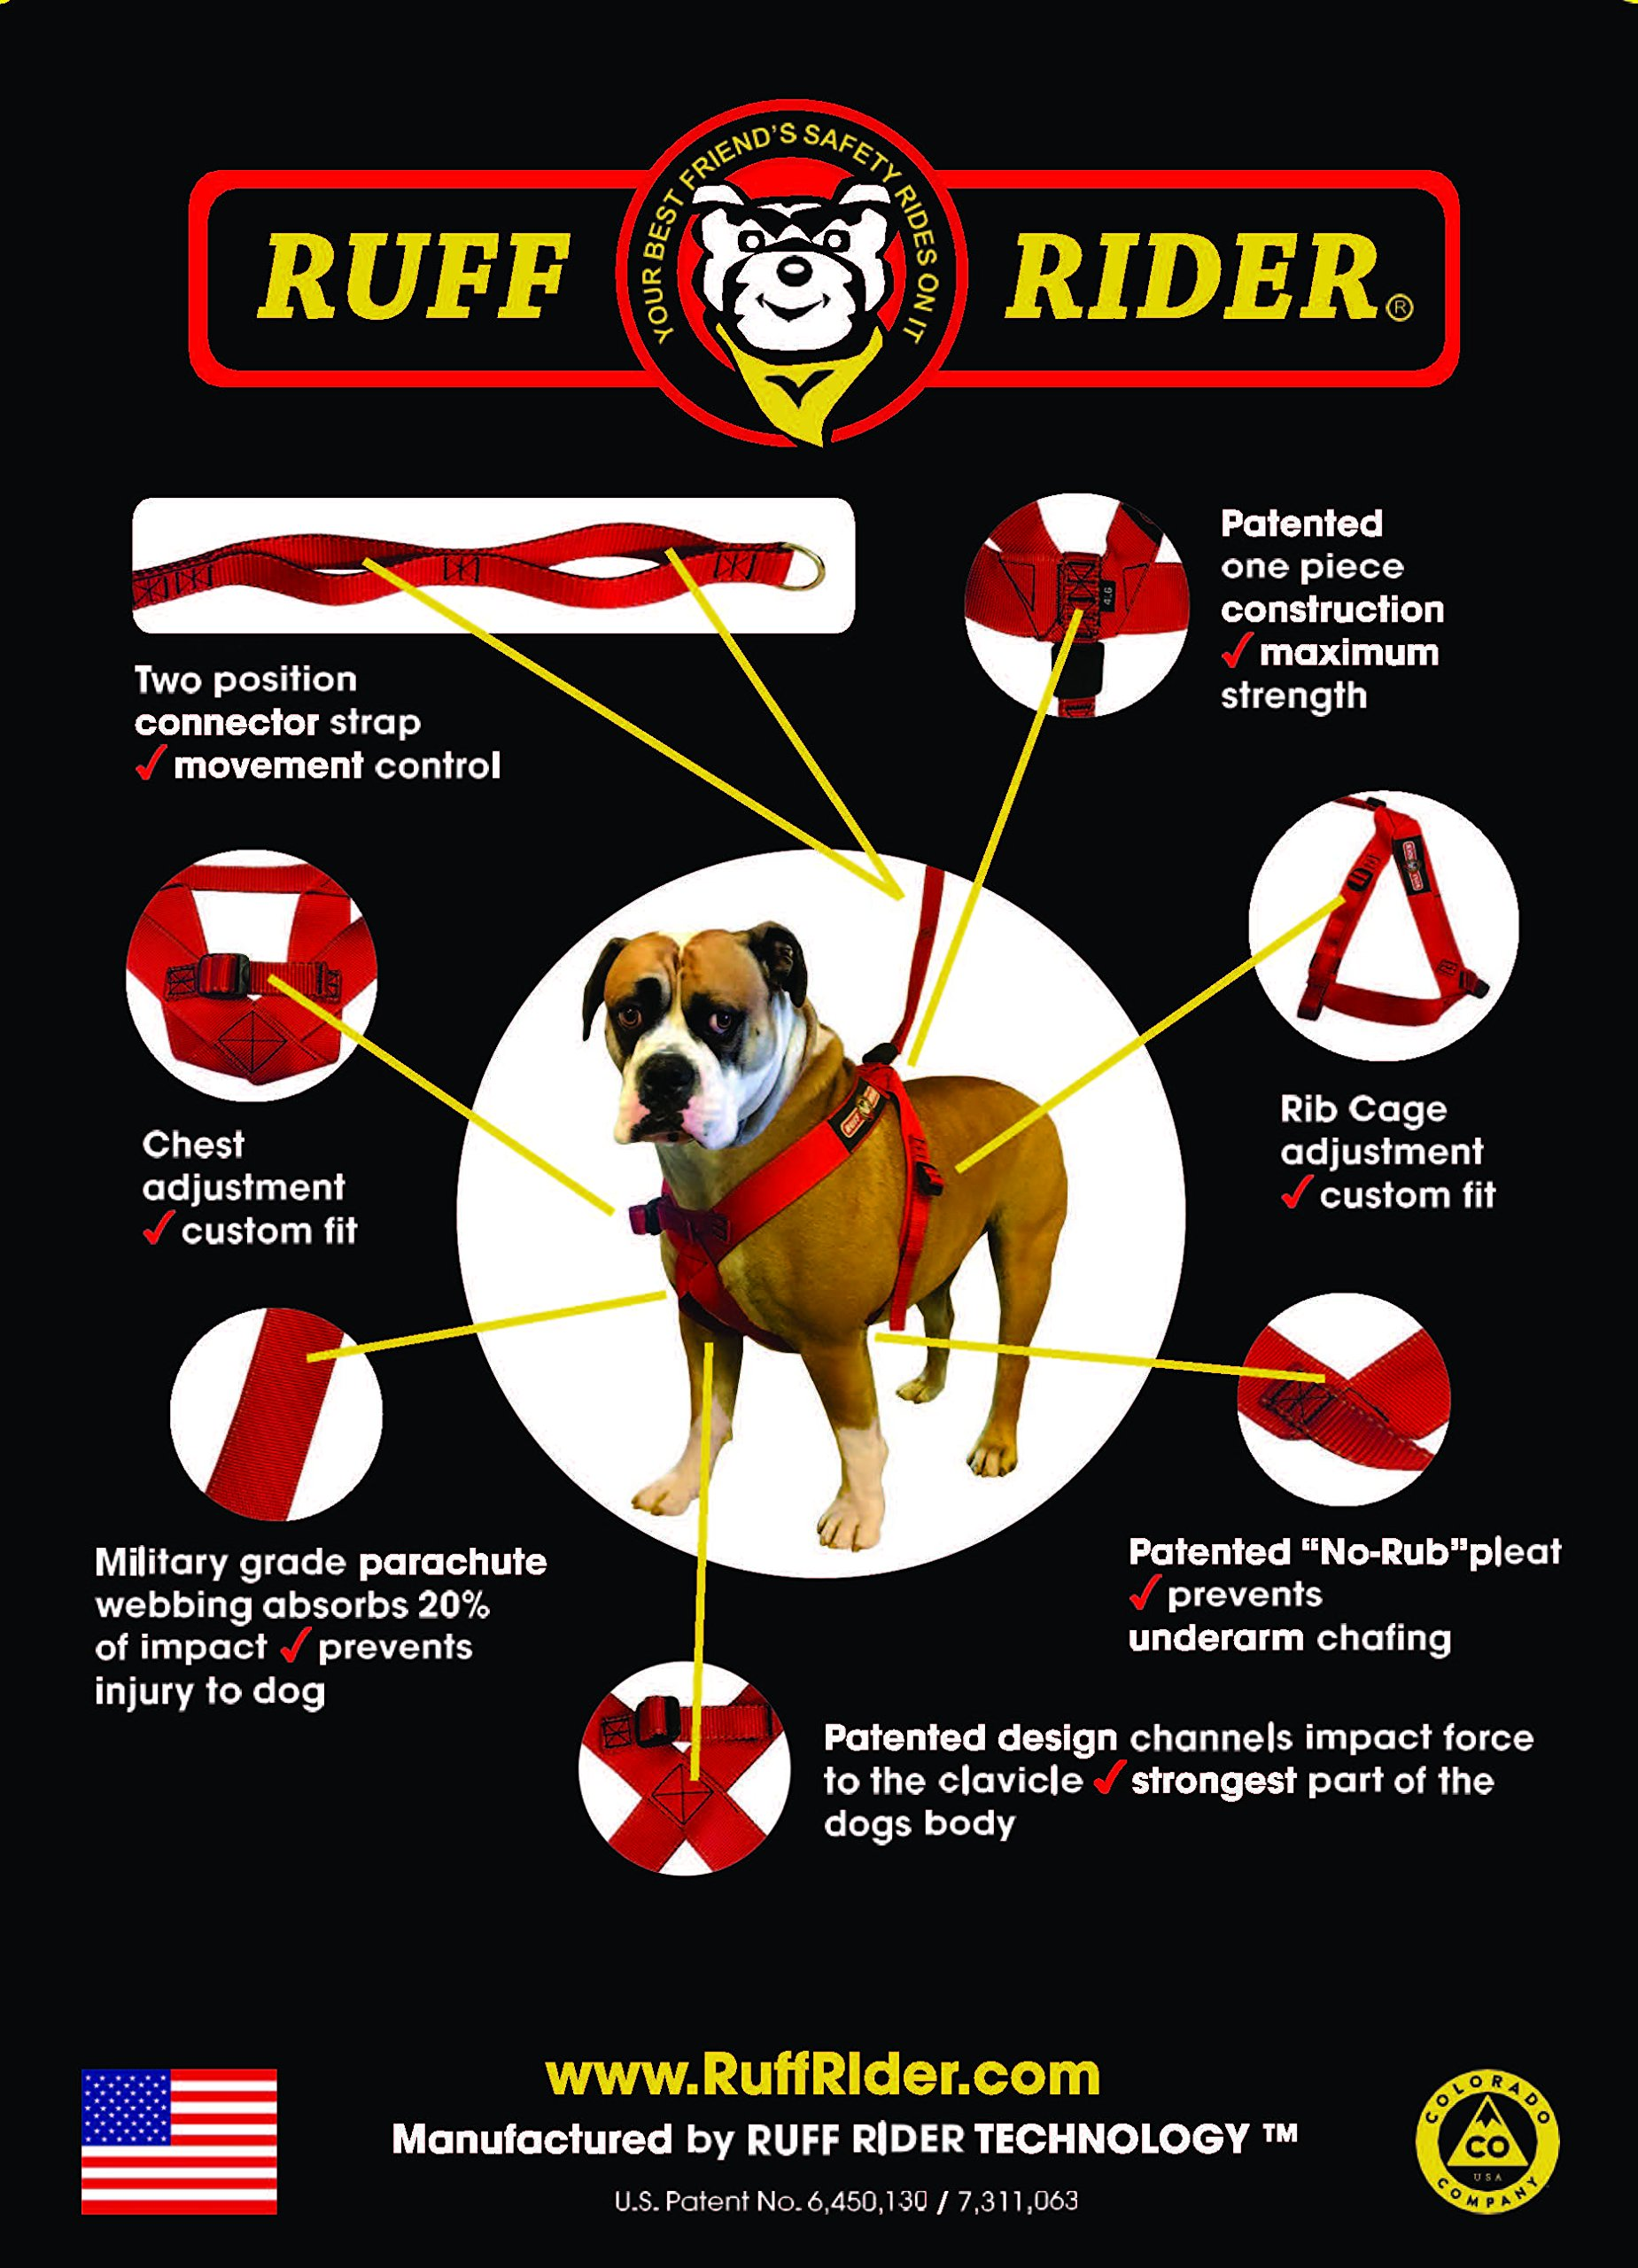 Ruff Rider Roadie Canine Vehicle Safety And Training Harness